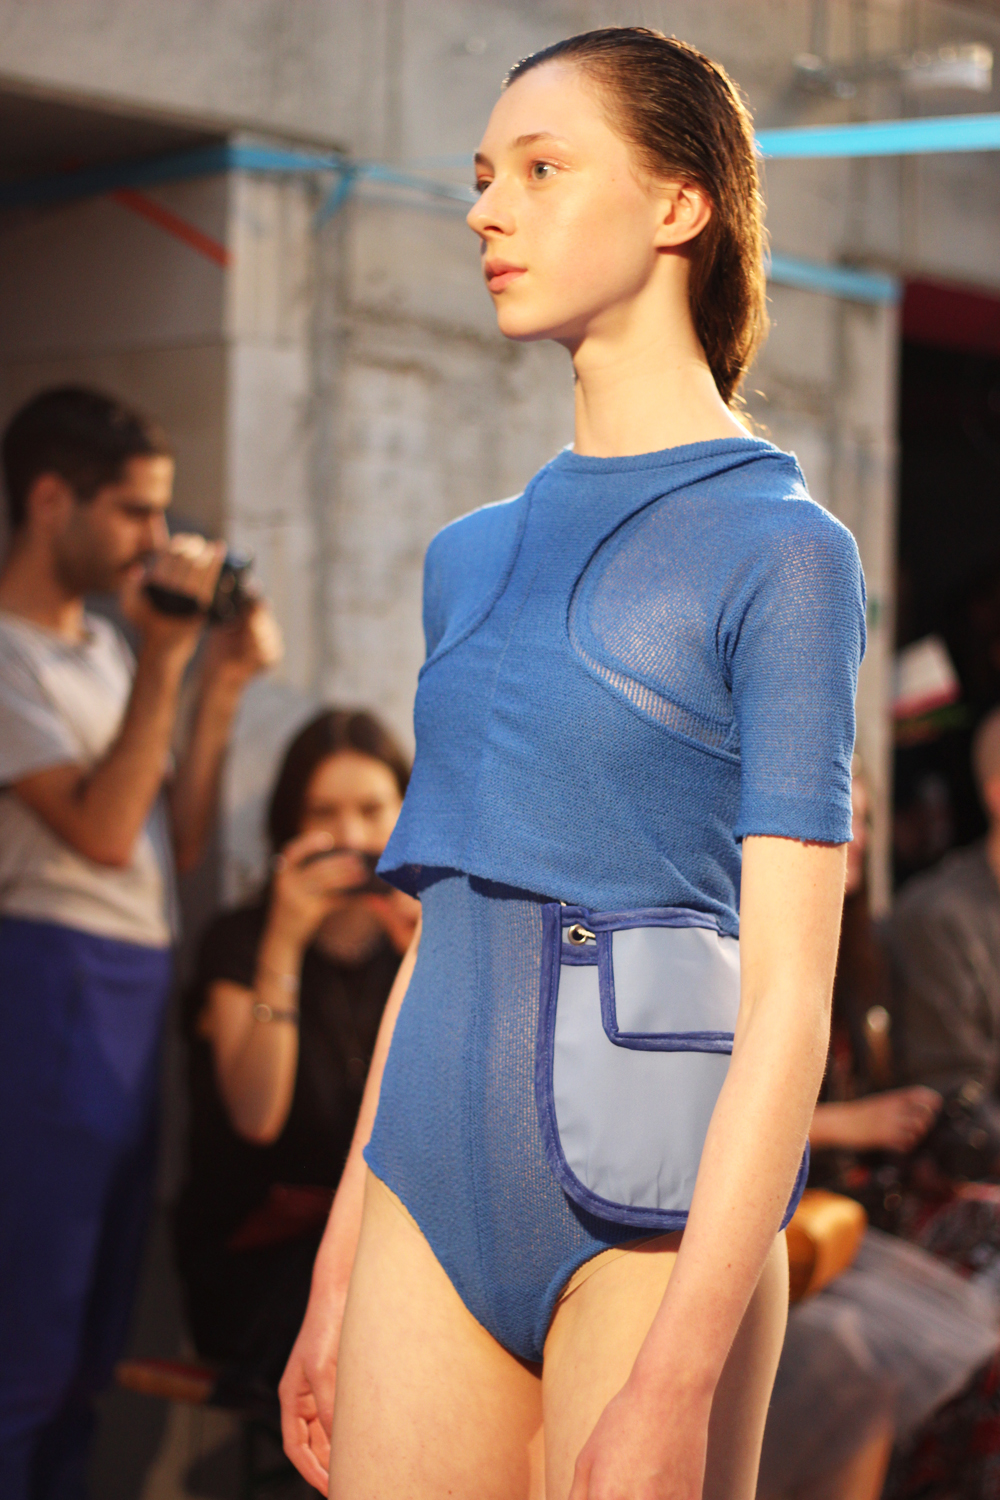 fatimayarie-berlinfashionweek-samplecm-runway-blue-body-img_4062